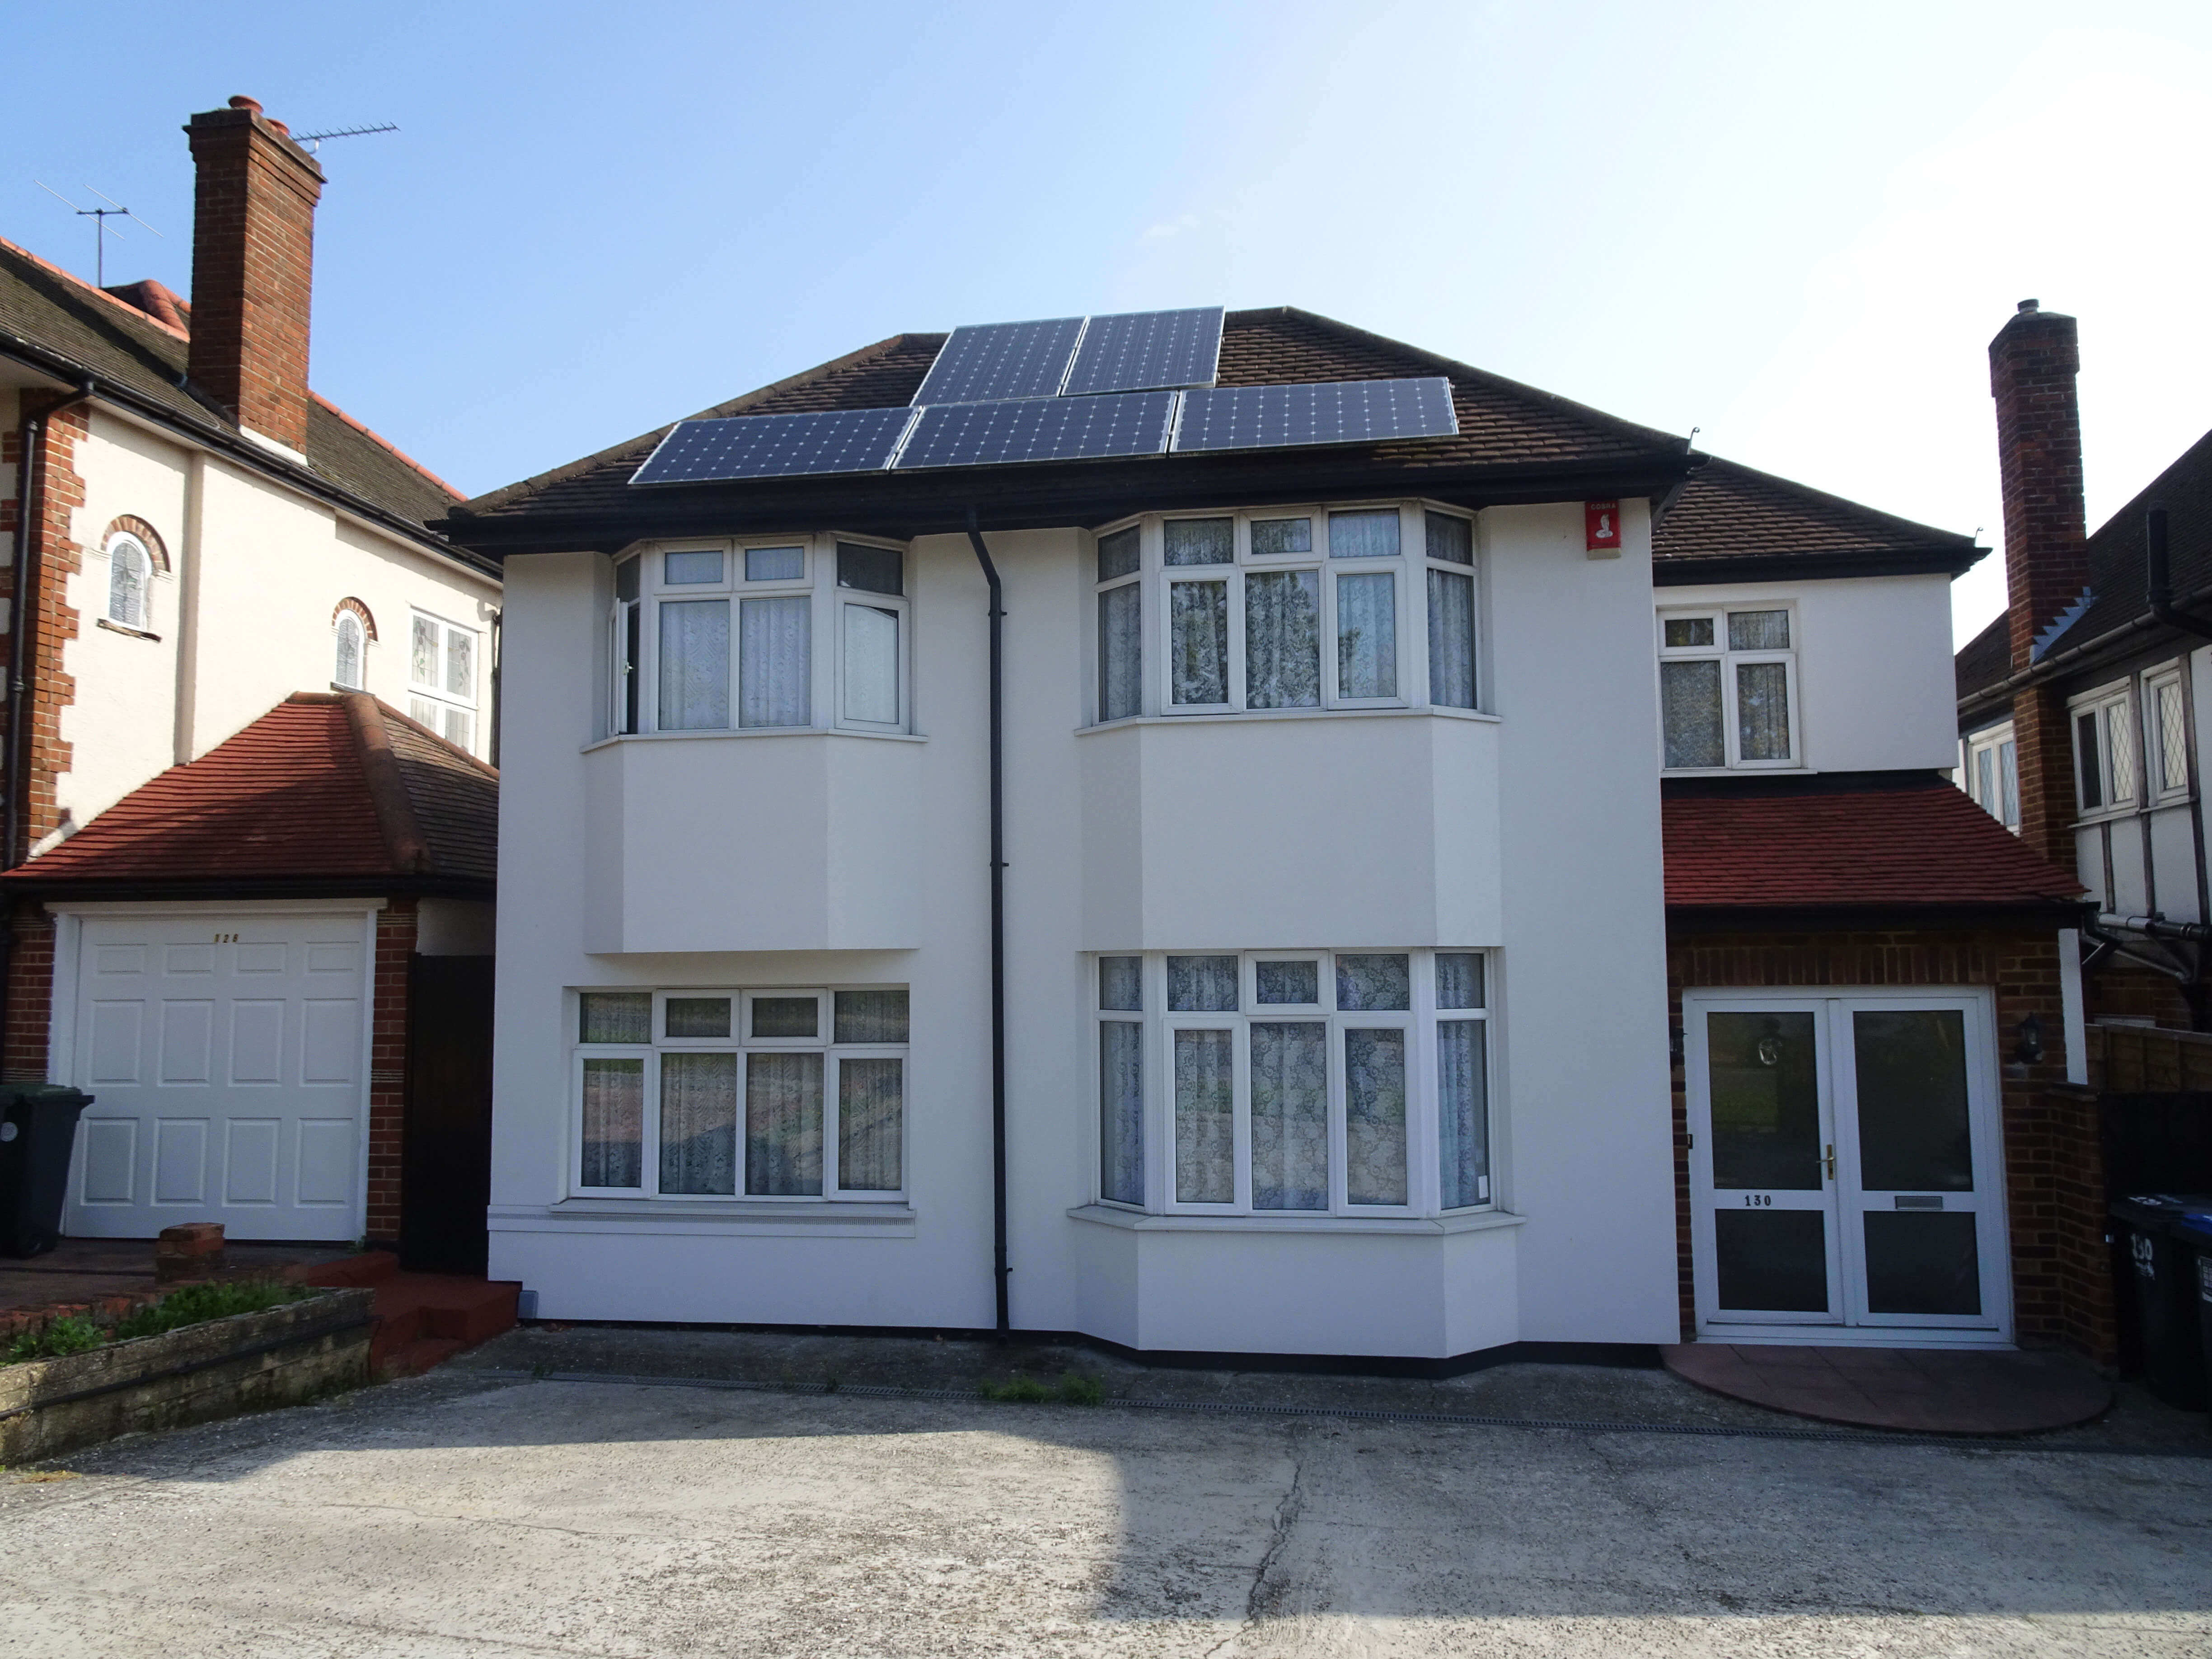 5 bed detached house to rent - Chase Road, London N14